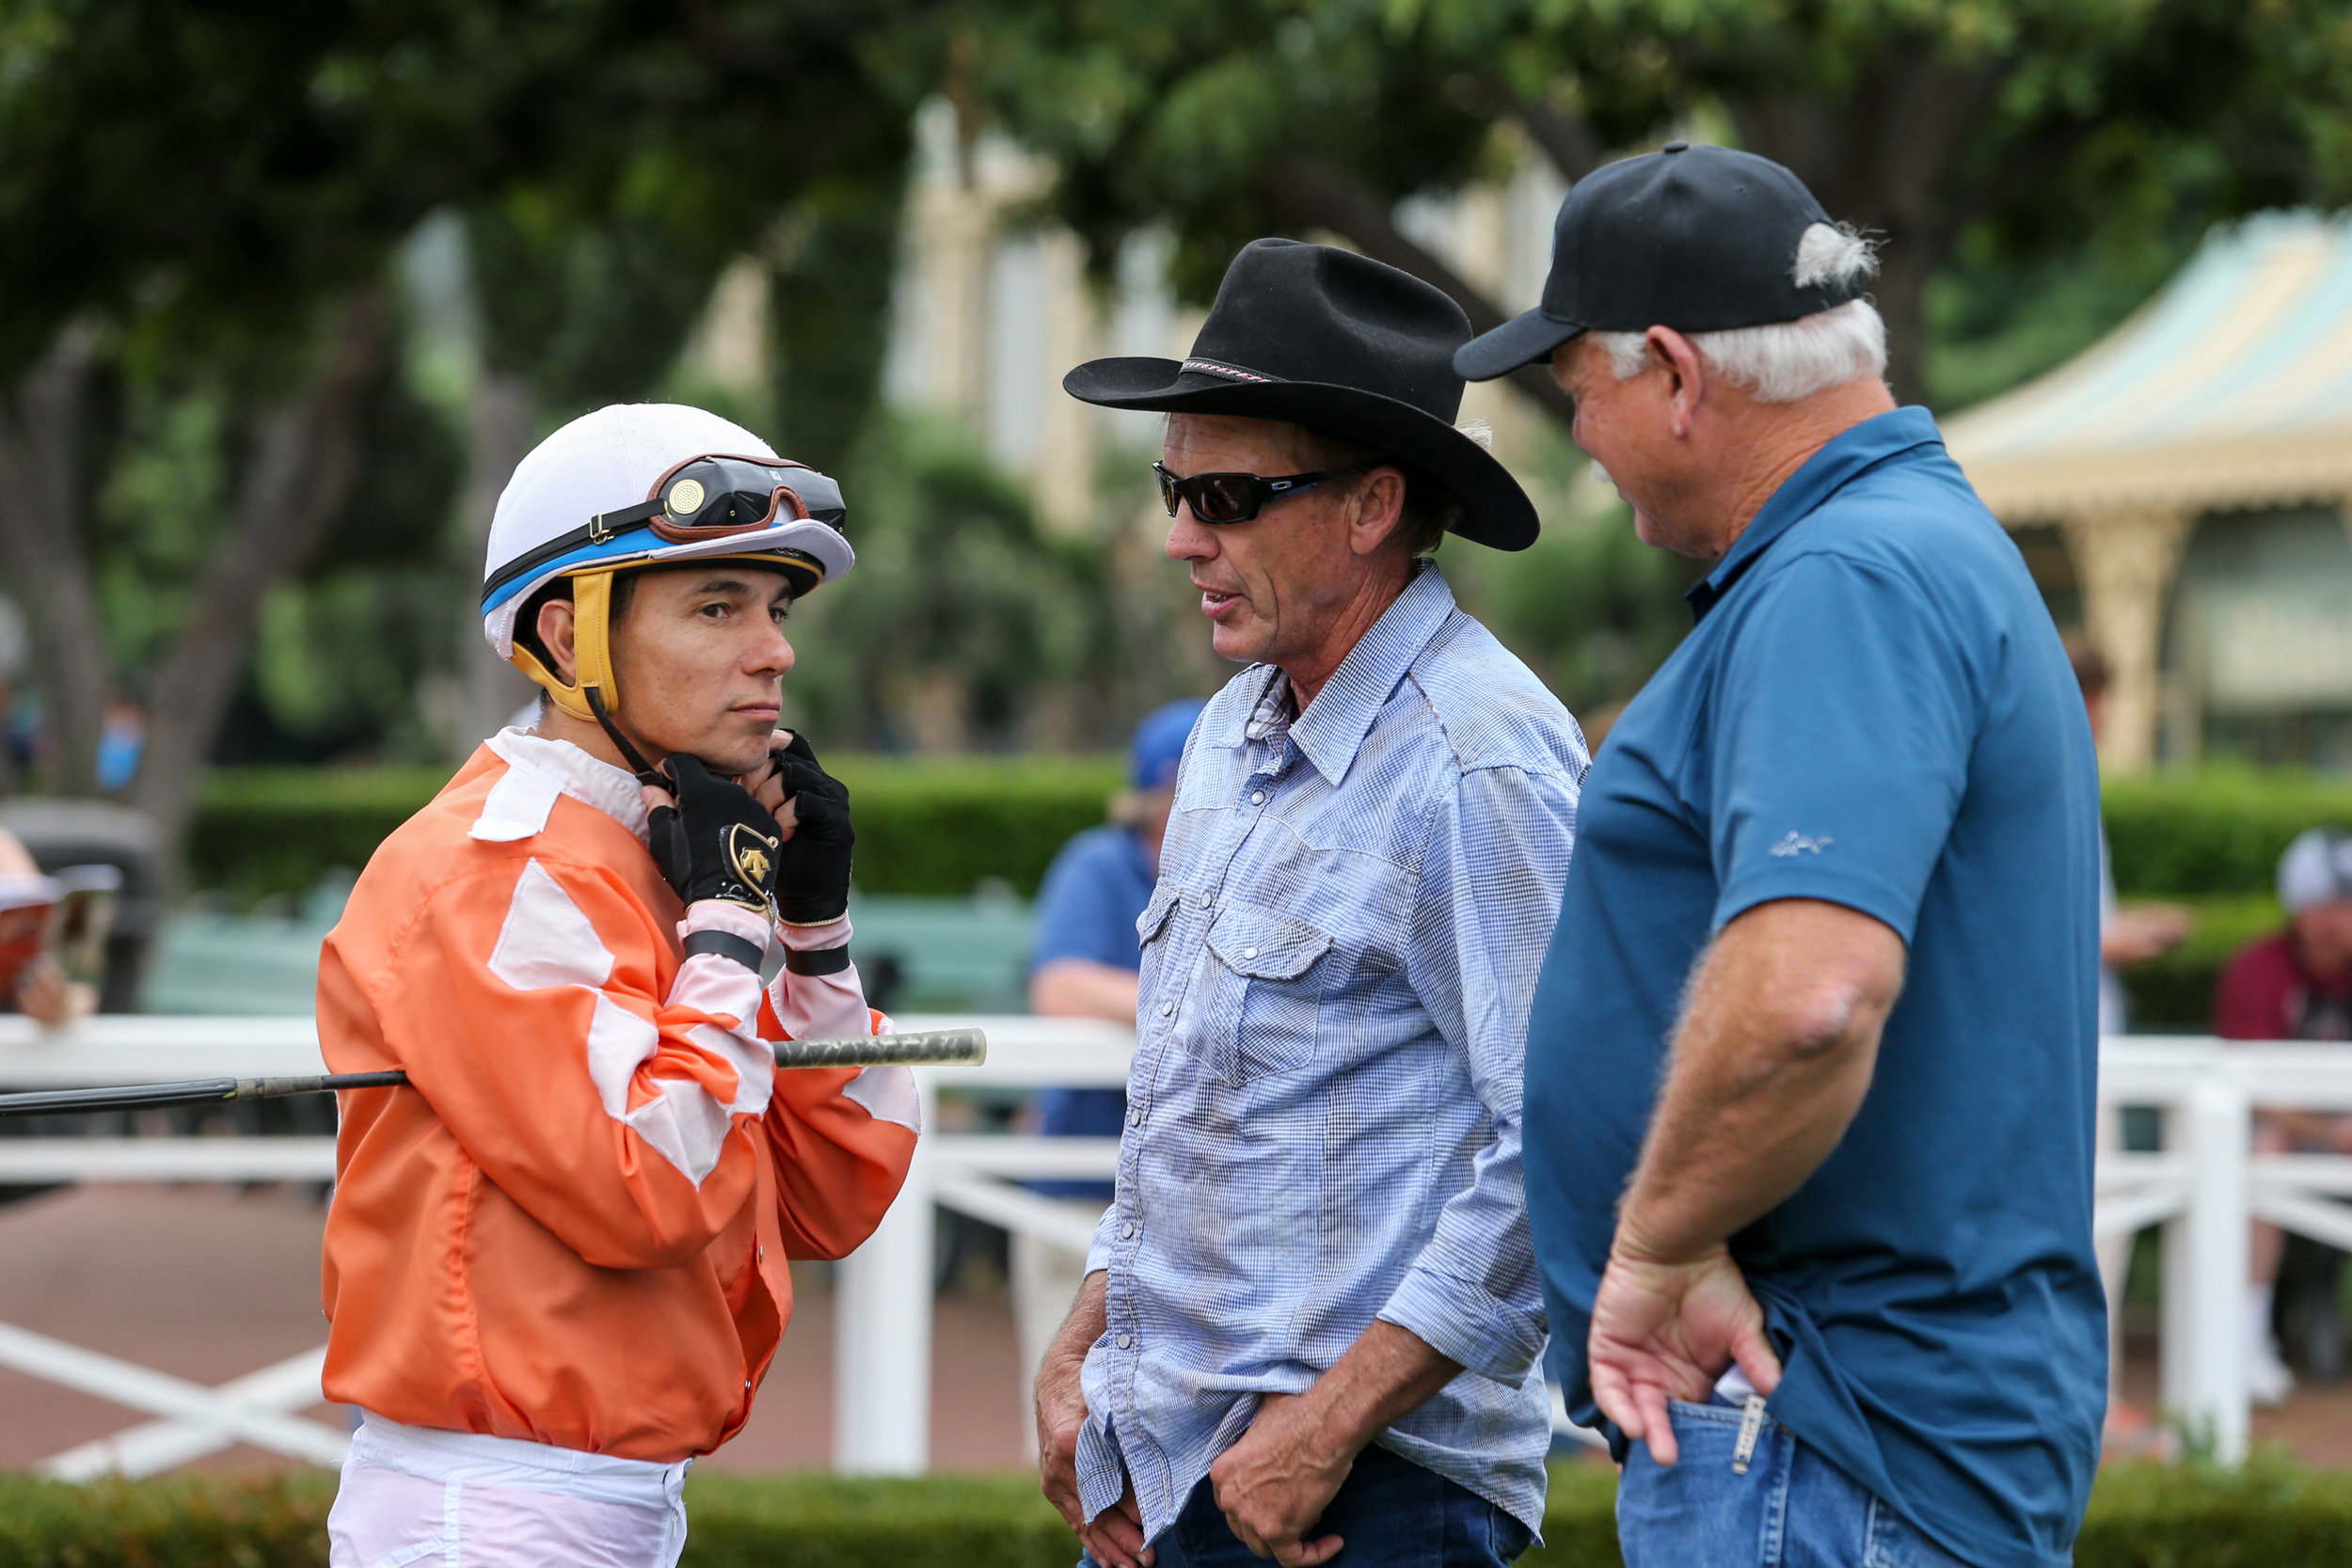 """By ED GOLDEN    The Santa Anita stable notes for April 14th (as written by Ed Golden) succinctly summarize that Val Brinkerhoff is one of the faceless trainers who drives the game.    He might be light years from being in a league with the Bafferts, Browns, and Pletchers but pound for pound, the 62-year-old Brinkerhoff has one of the most industrious operations in the land, flying beneath the radar while gaining respect from peers and bettors alike.    He's an angular version of John Wayne, cowboy hat and all, but without the girth and swagger, Brinkerhoff is a hands-on horseman from dawn till dusk.    He is a former jockey who gallops his own horses, be they at Santa Anita, Del Mar, Turf Paradise in Arizona, or his training center in St. George, Utah, where he breaks babies and legs up older horses that have been turned out.    In short, Val Brinkerhoff is a man's man, pilgrim.    It all began when he was 14 in a dot on the map called Fillmore, Utah, current population circa 2,500.    Named for the 13th President of the United States, Millard Fillmore, it was the capital of Utah from 1851 to 1856. The original Utah Territorial Statehouse building still stands in the central part of the state, 148 miles south of Salt Lake City and 162 miles north of St. George.    But enough of history.    """"My dad trained about 30 horses when we lived in Fillmore,"""" said Brinkerhoff, a third-generation horseman. """"I would ride a pony up and down a dirt road outside our house every day, and that's how I learned to gallop horses.    """"There was no veterinarian in Fillmore, so you had to learn how to be a vet on your own, on top of everything else, because it was 300 miles round trip to a vet. So, if something was wrong, you had to figure it out for yourself without having to run to Salt Lake and back every five minutes.    """"I was 5' 10'' and weighed 118 pounds and rode at the smaller venues, mainly in Utah but also Montana, where I was leading rider, and Wyoming and California (Fairplex """